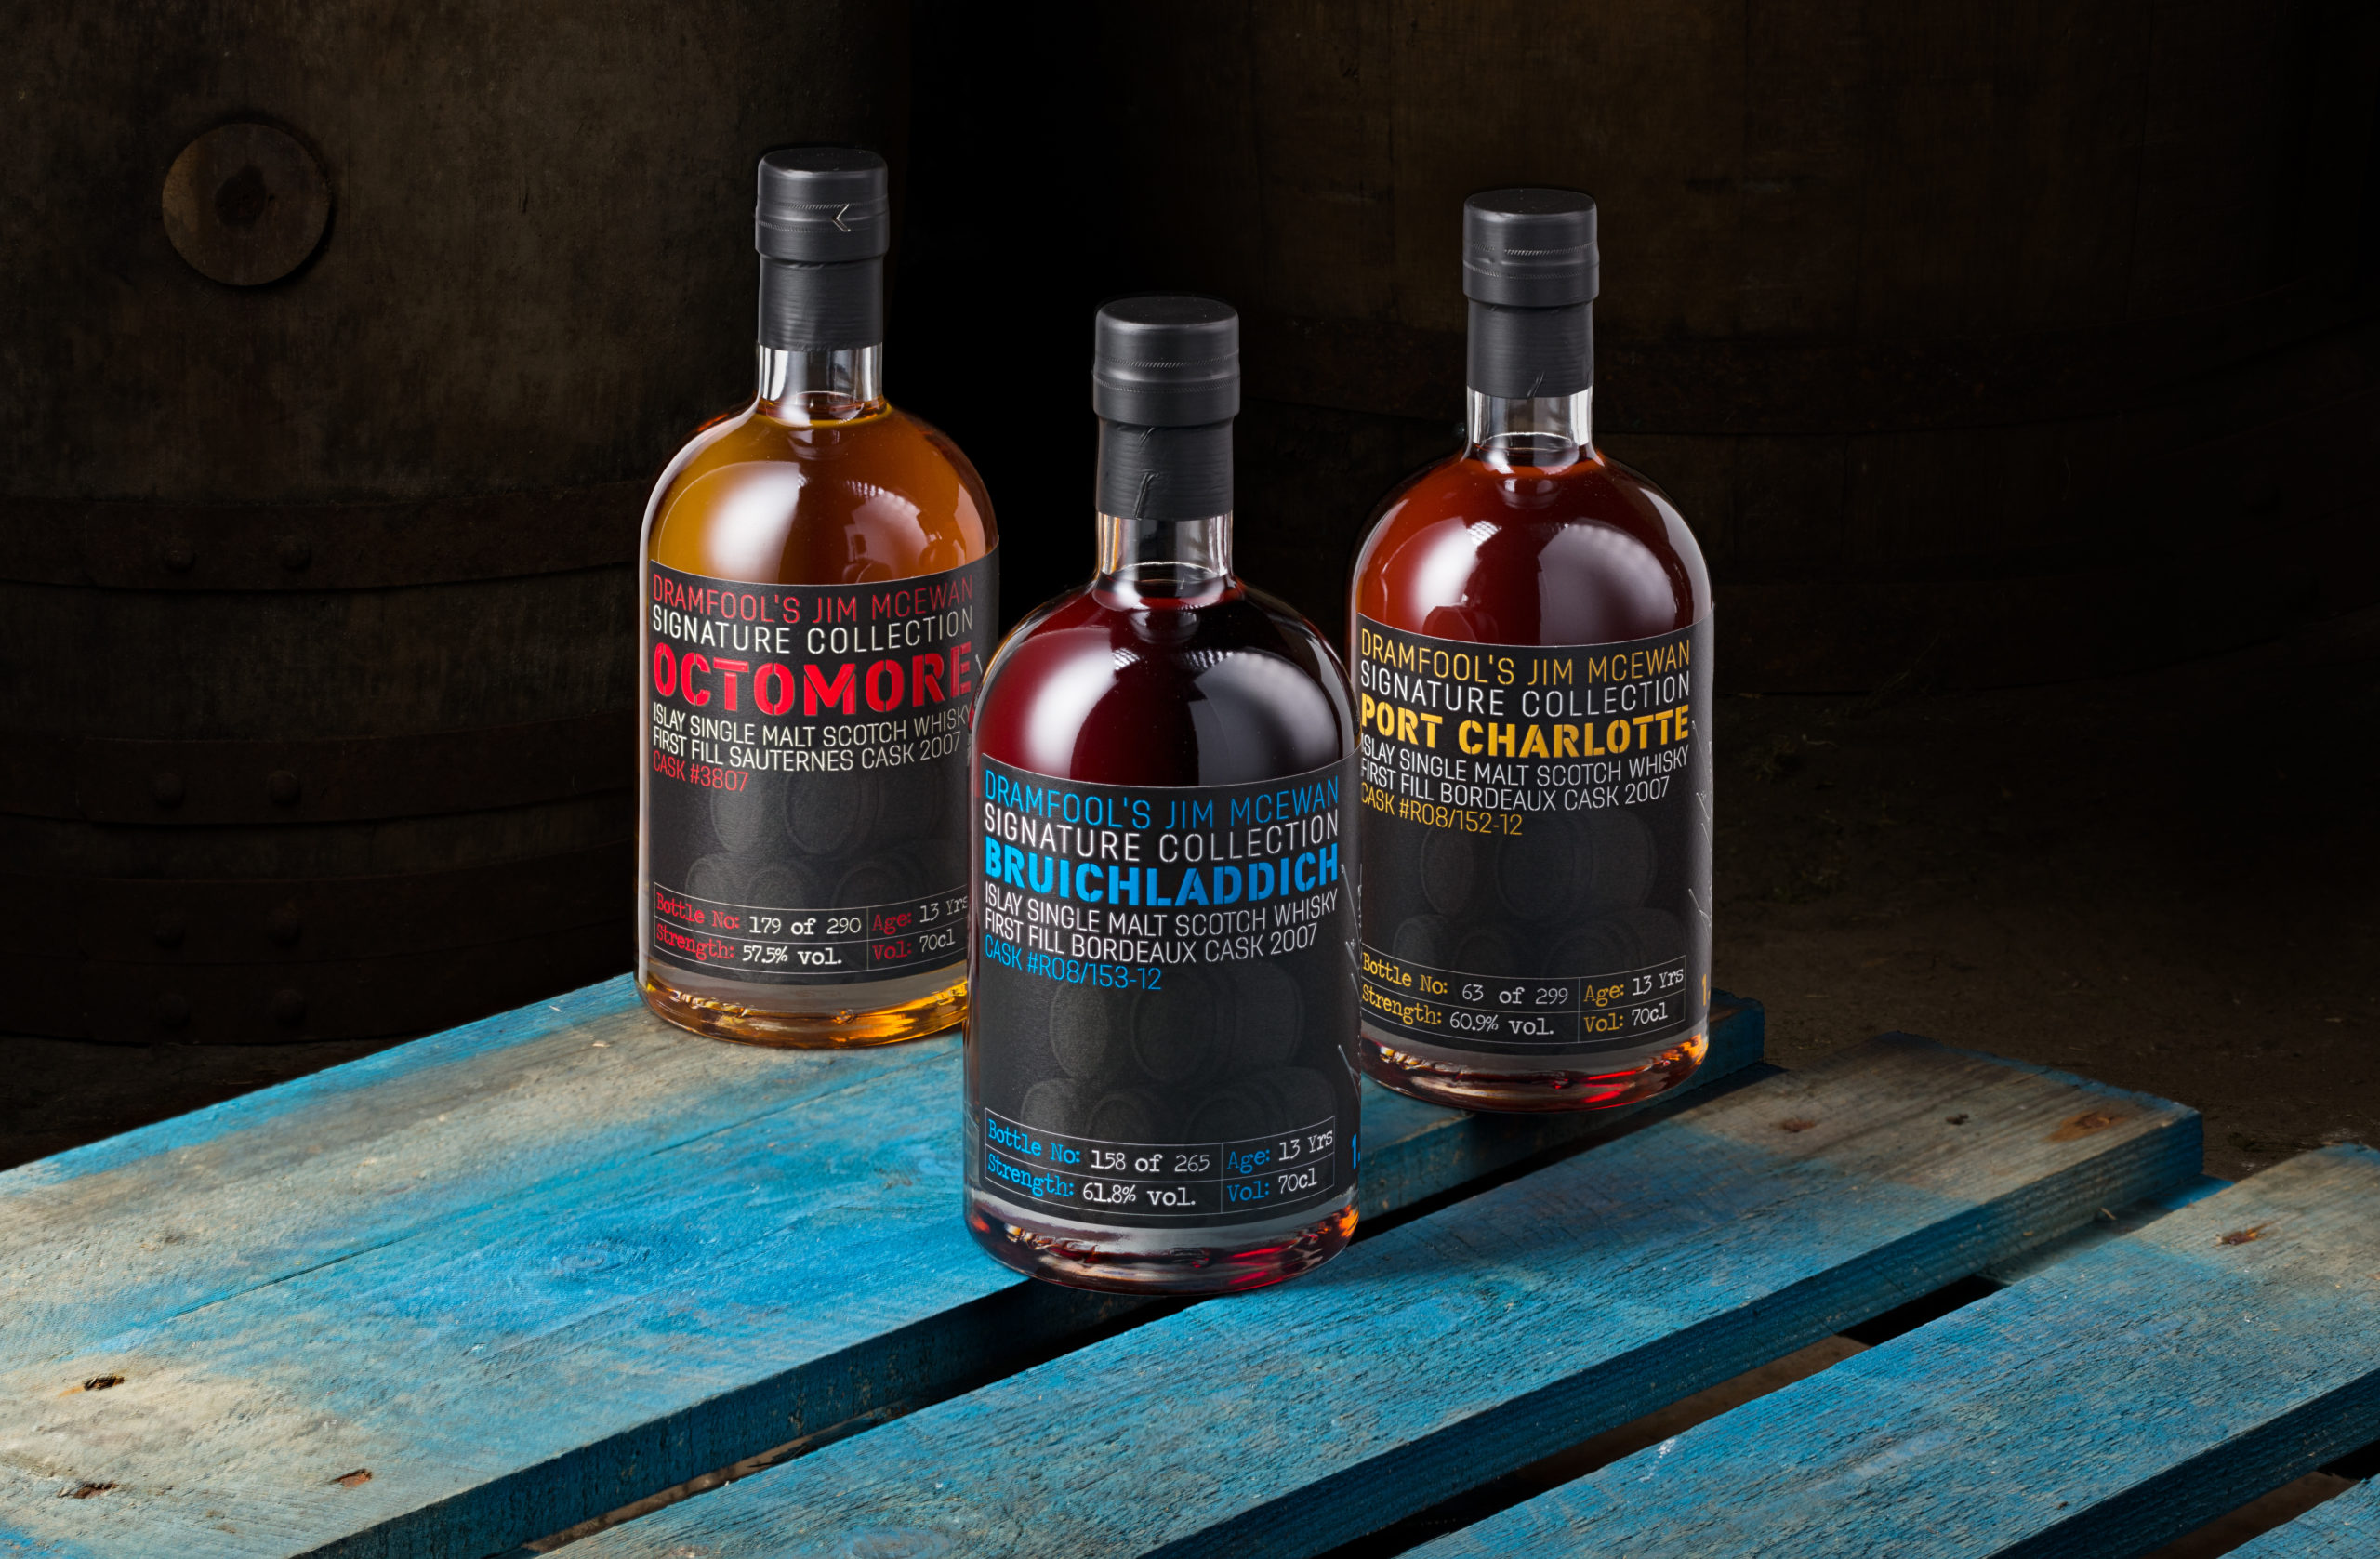 Auction For New Bottles From Bruichladdich's Jim Mcewan photo